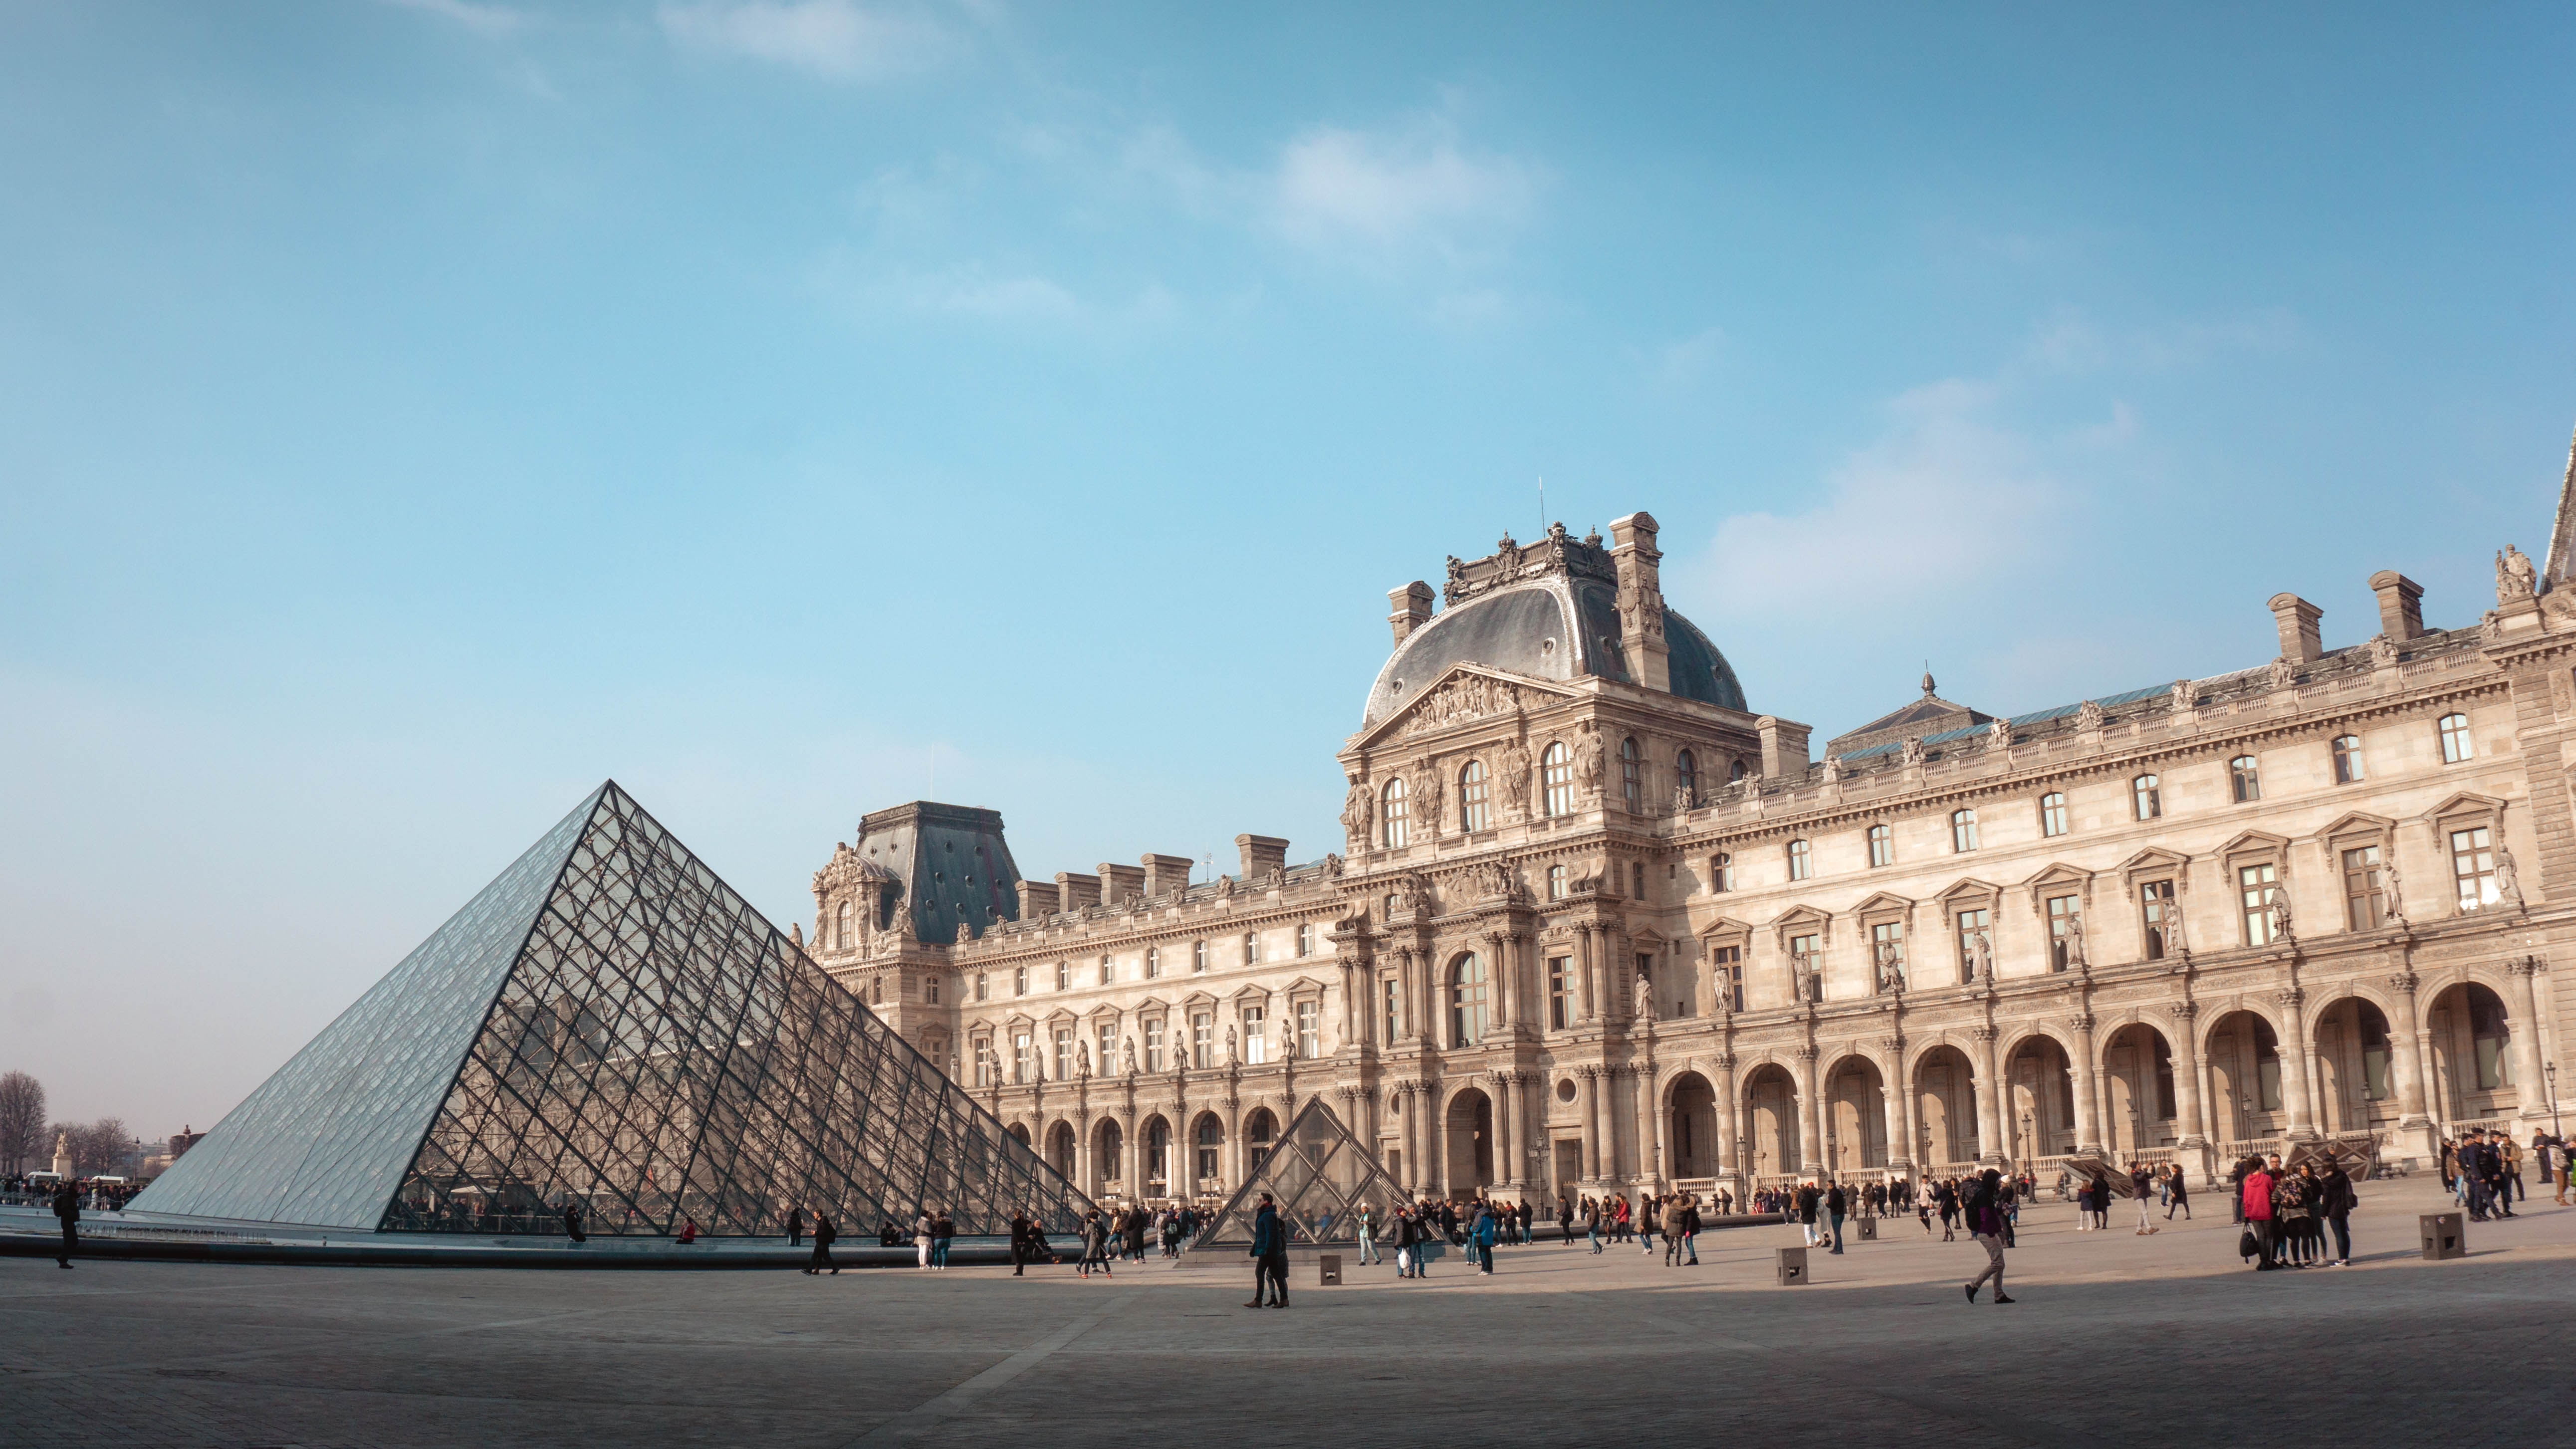 The image is of the Louvre museum with the iconic glass pyramid in front.